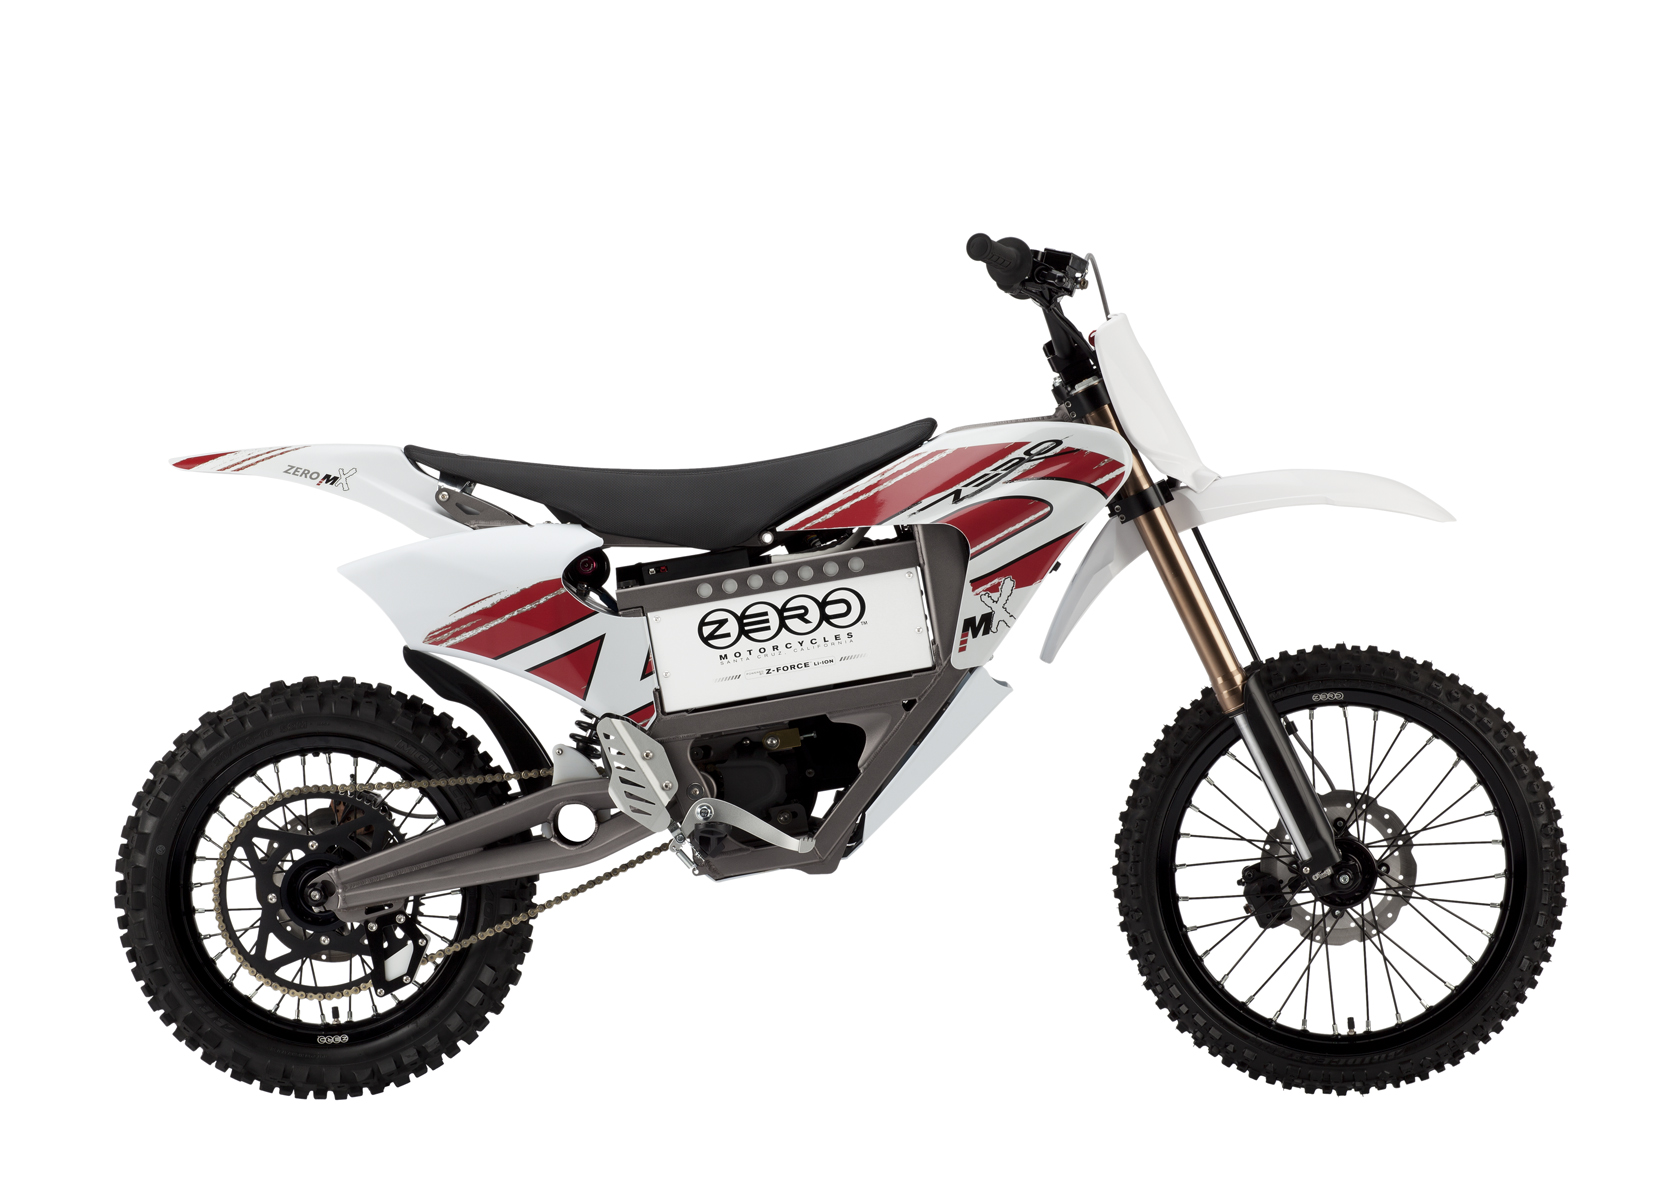 '.2011 Zero MX Electric Motorcycle: Right Profile, Dirt Model, White Background.'